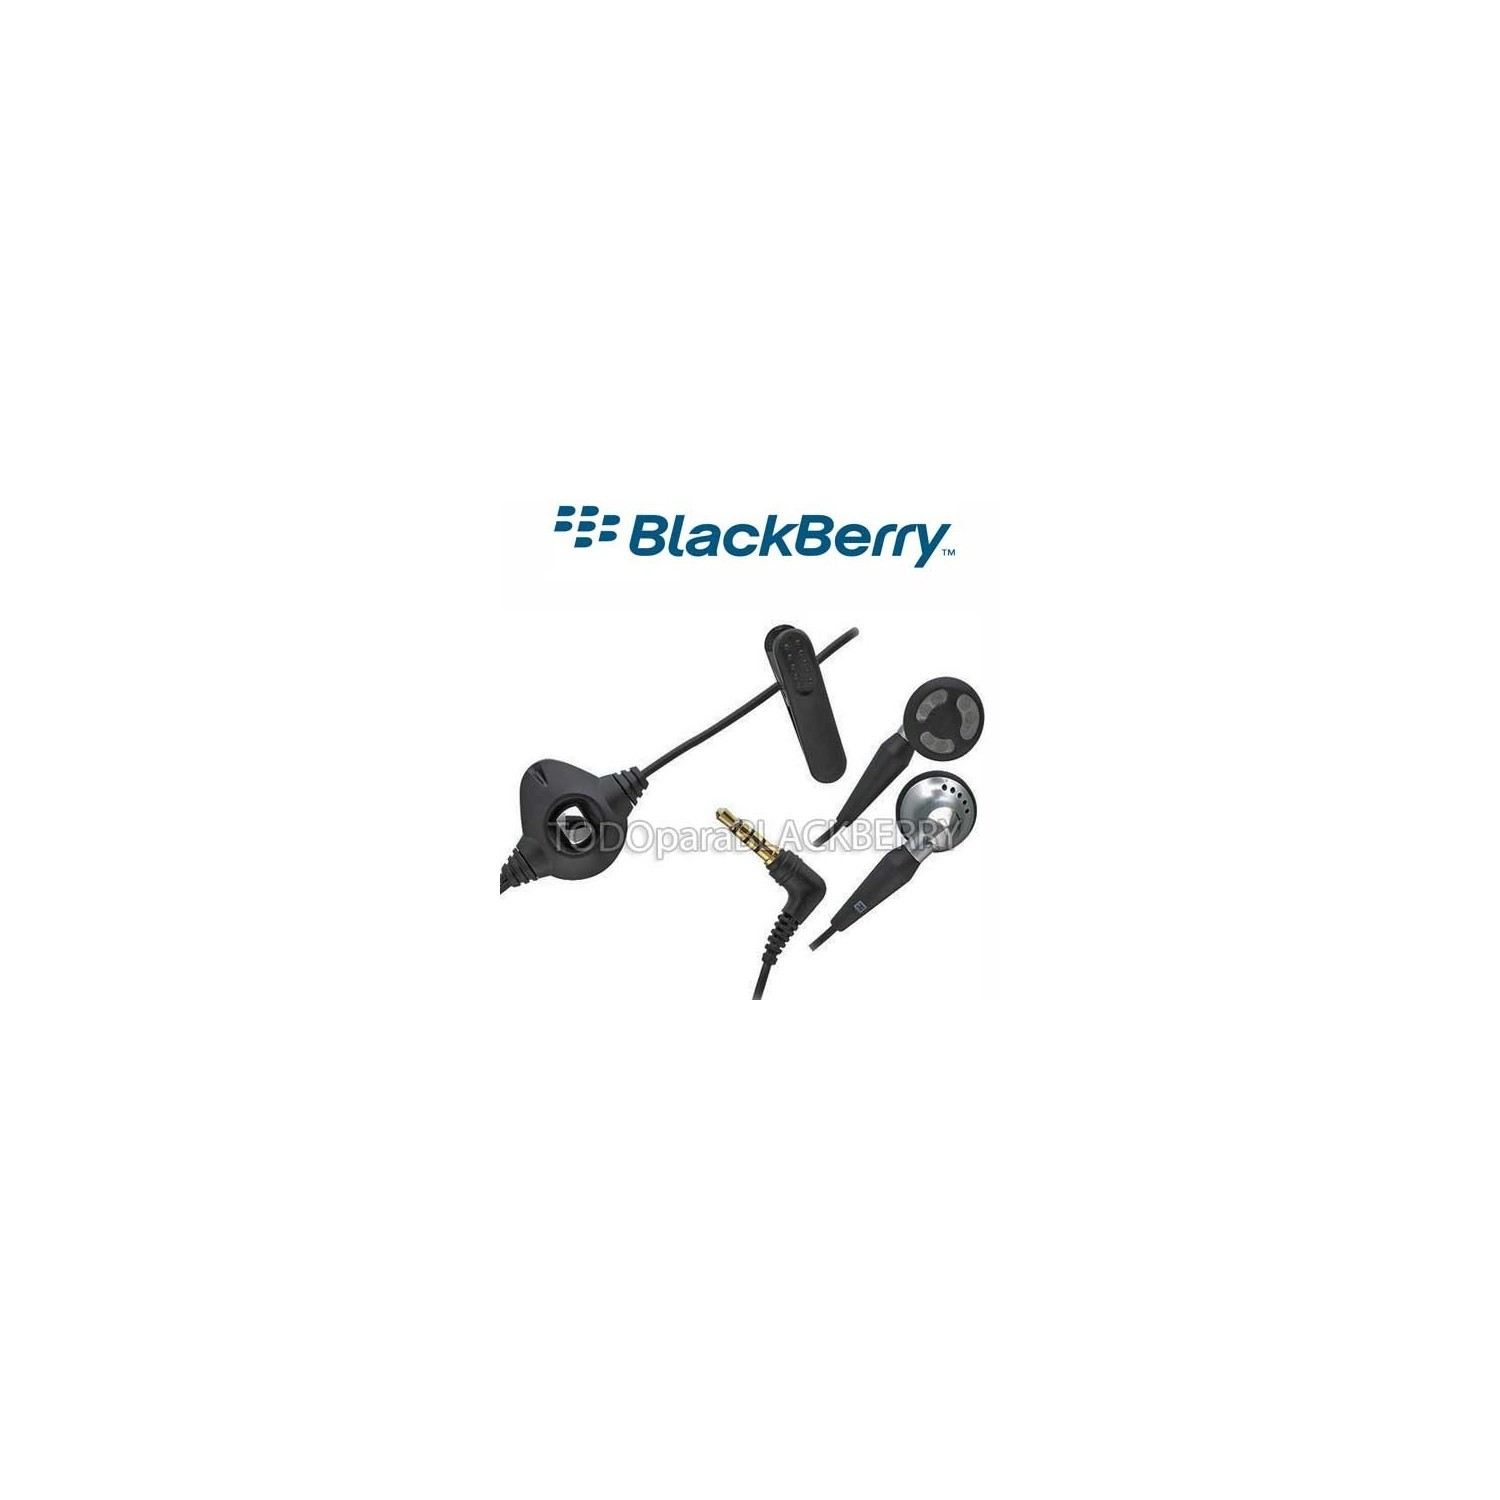 Manos libres auricular Stereo Universal 3.5mm HDW-14322-001